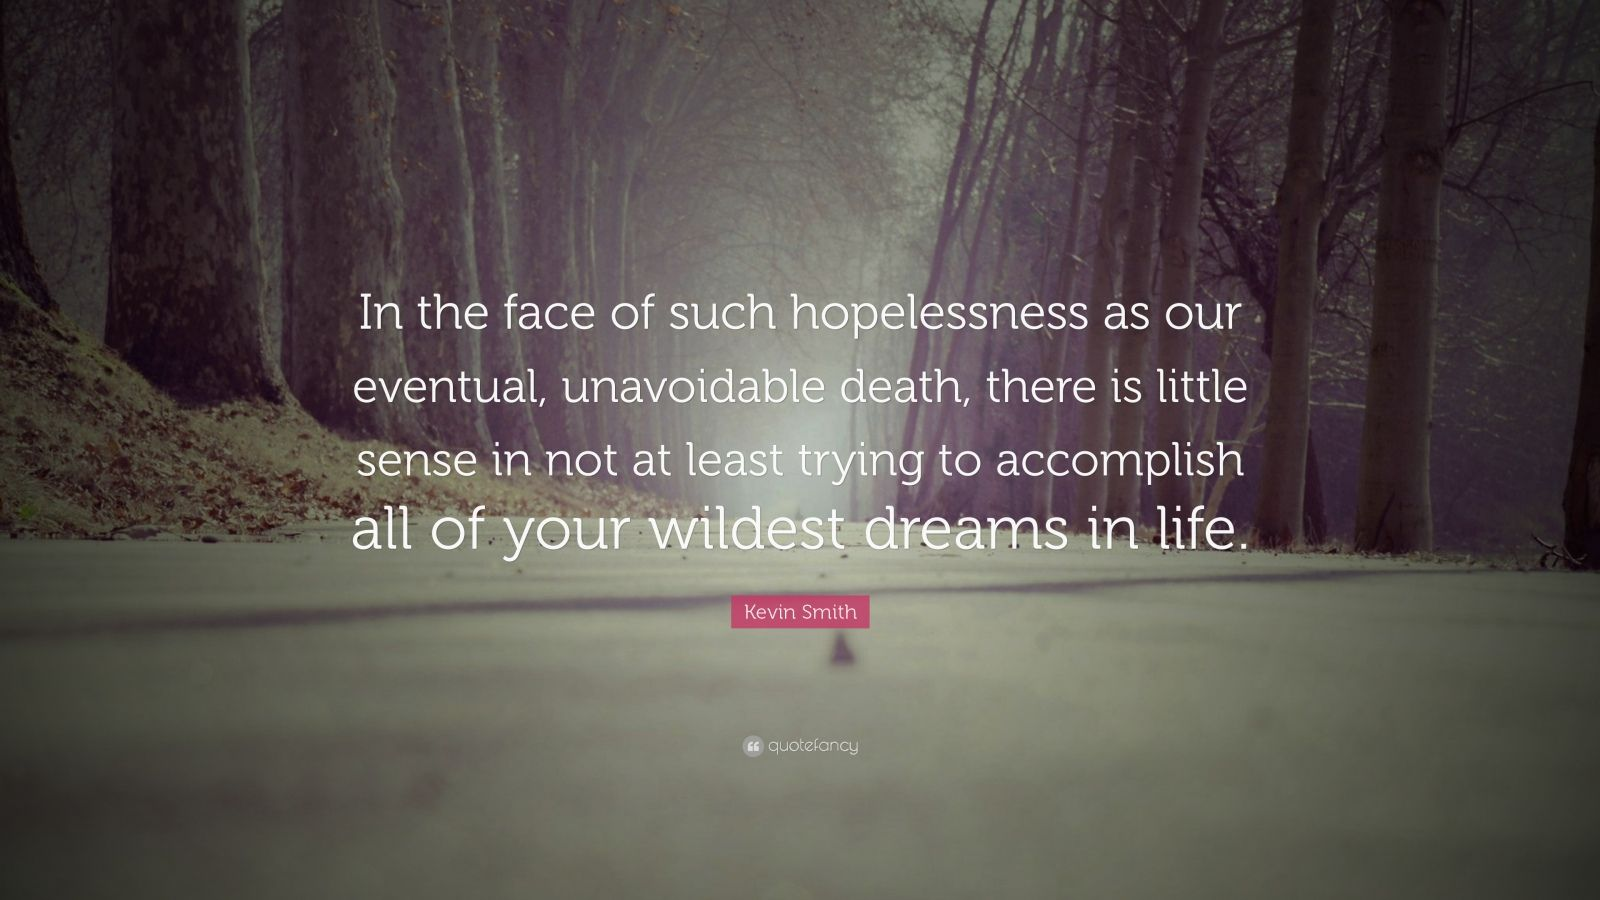 """Kevin Smith Quote: """"In the face of such hopelessness as our eventual, unavoidable death, there is little sense in not at least trying to accomplish all of your wildest dreams in life."""""""